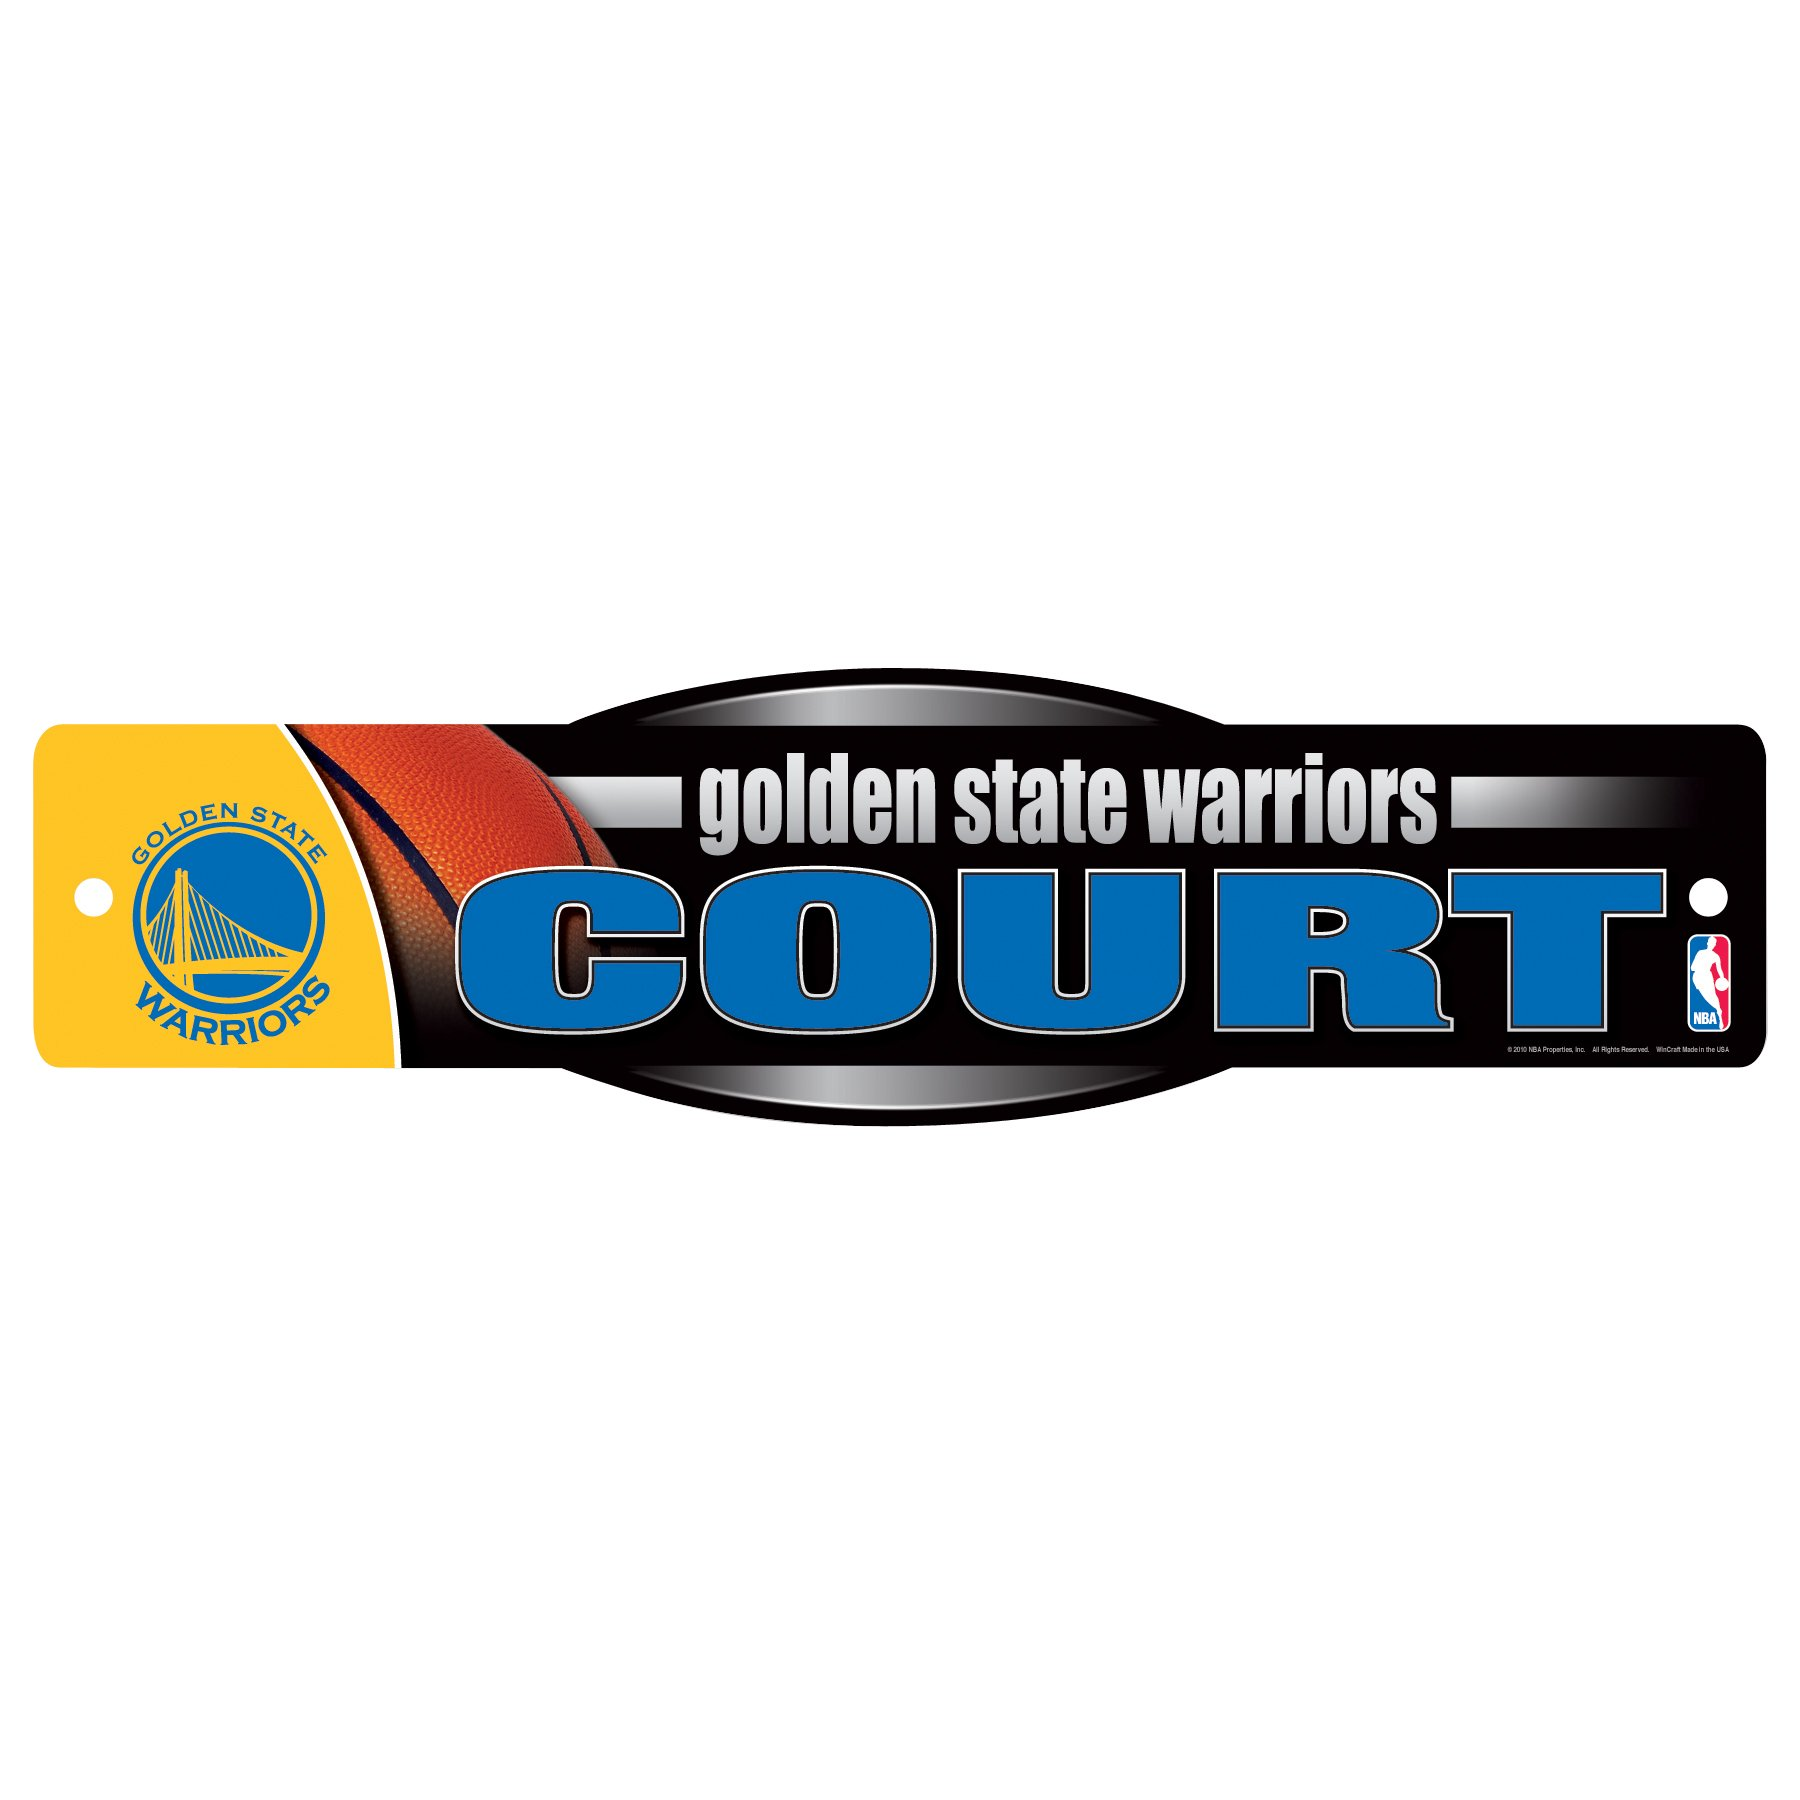 WinCraft NBA Golden State Warriors Sign, 4.5 x 17-Inch